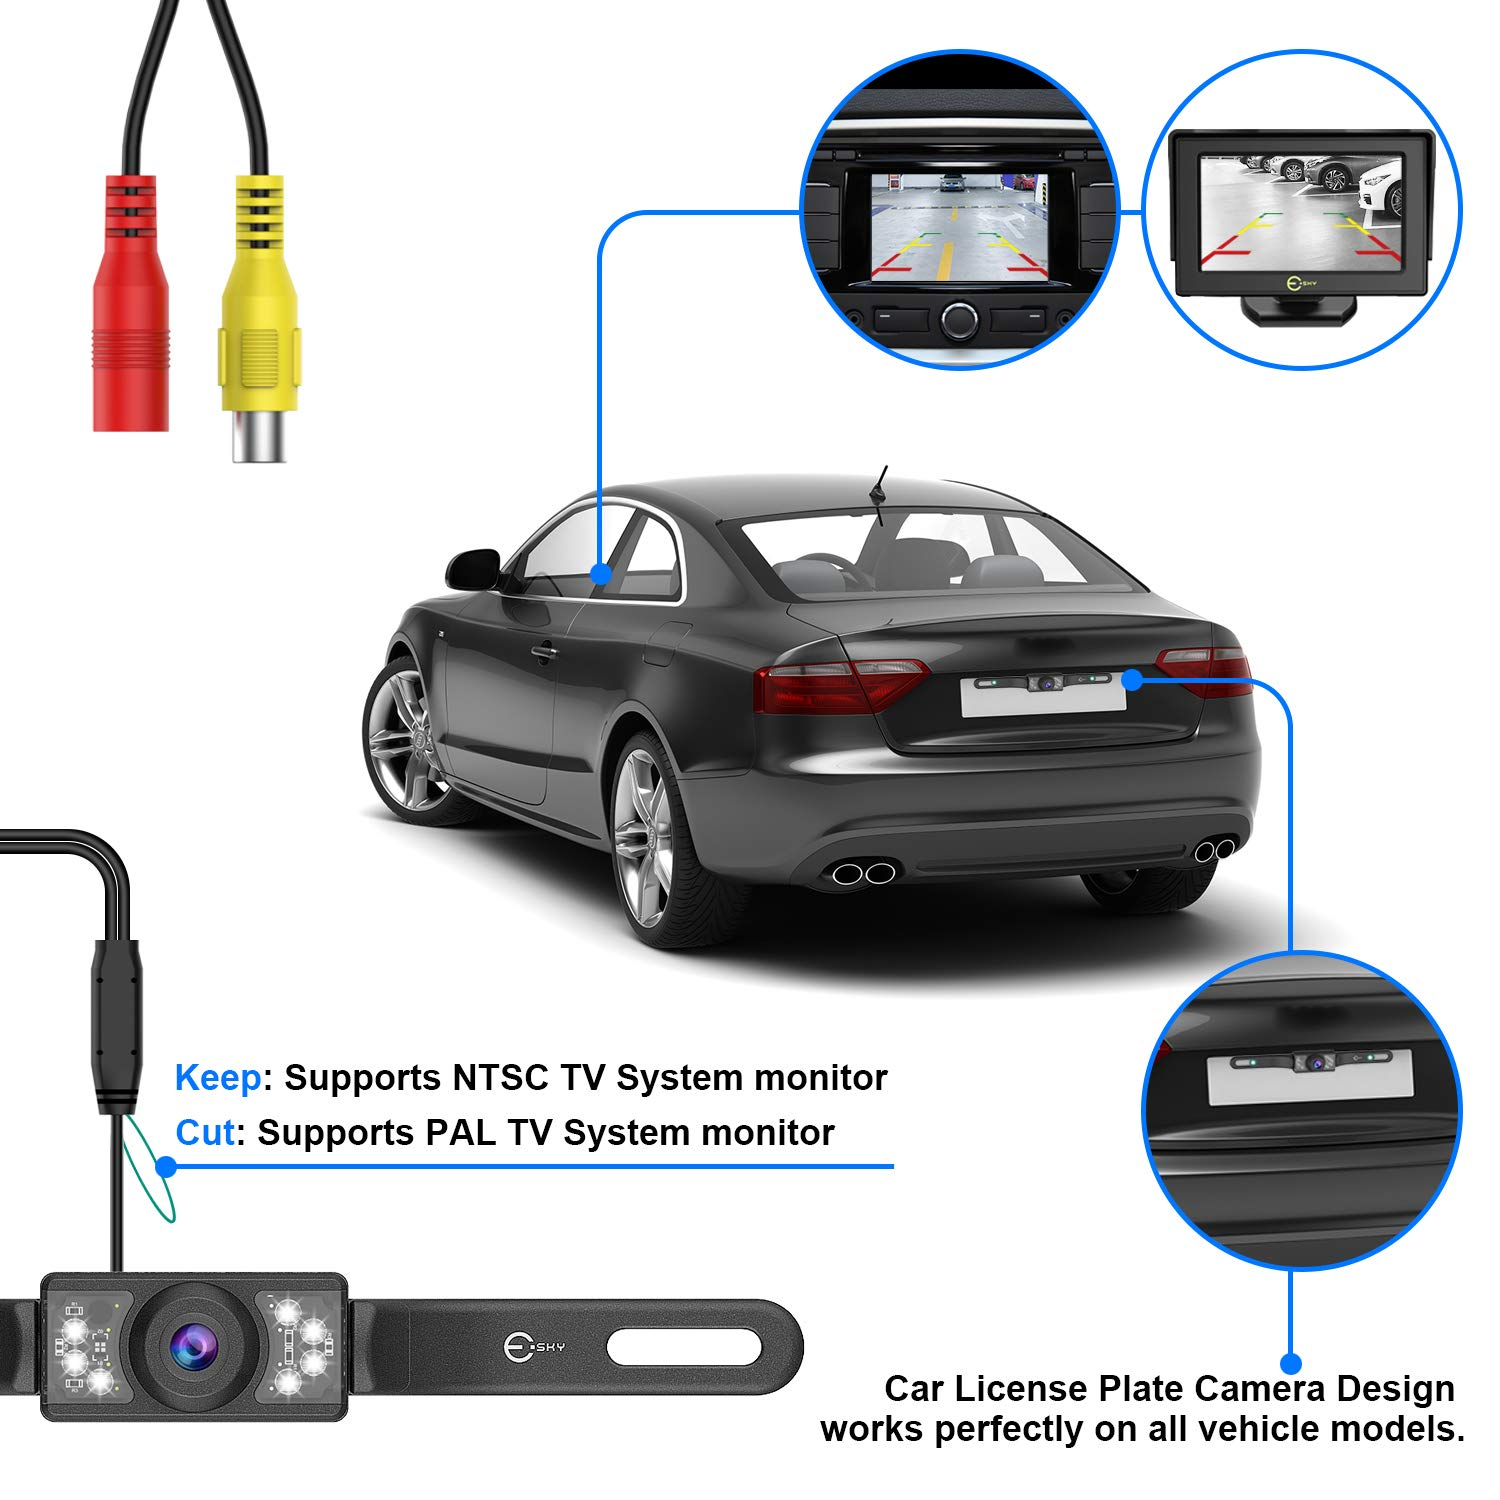 Esky Upgraded Version Car Rear View Reversing Camera Automotive with 170/° Wide View Angle 7 LED Lights Night Vision Waterproof HD Color Universal Car Backing Camera License Plate Backup Camera